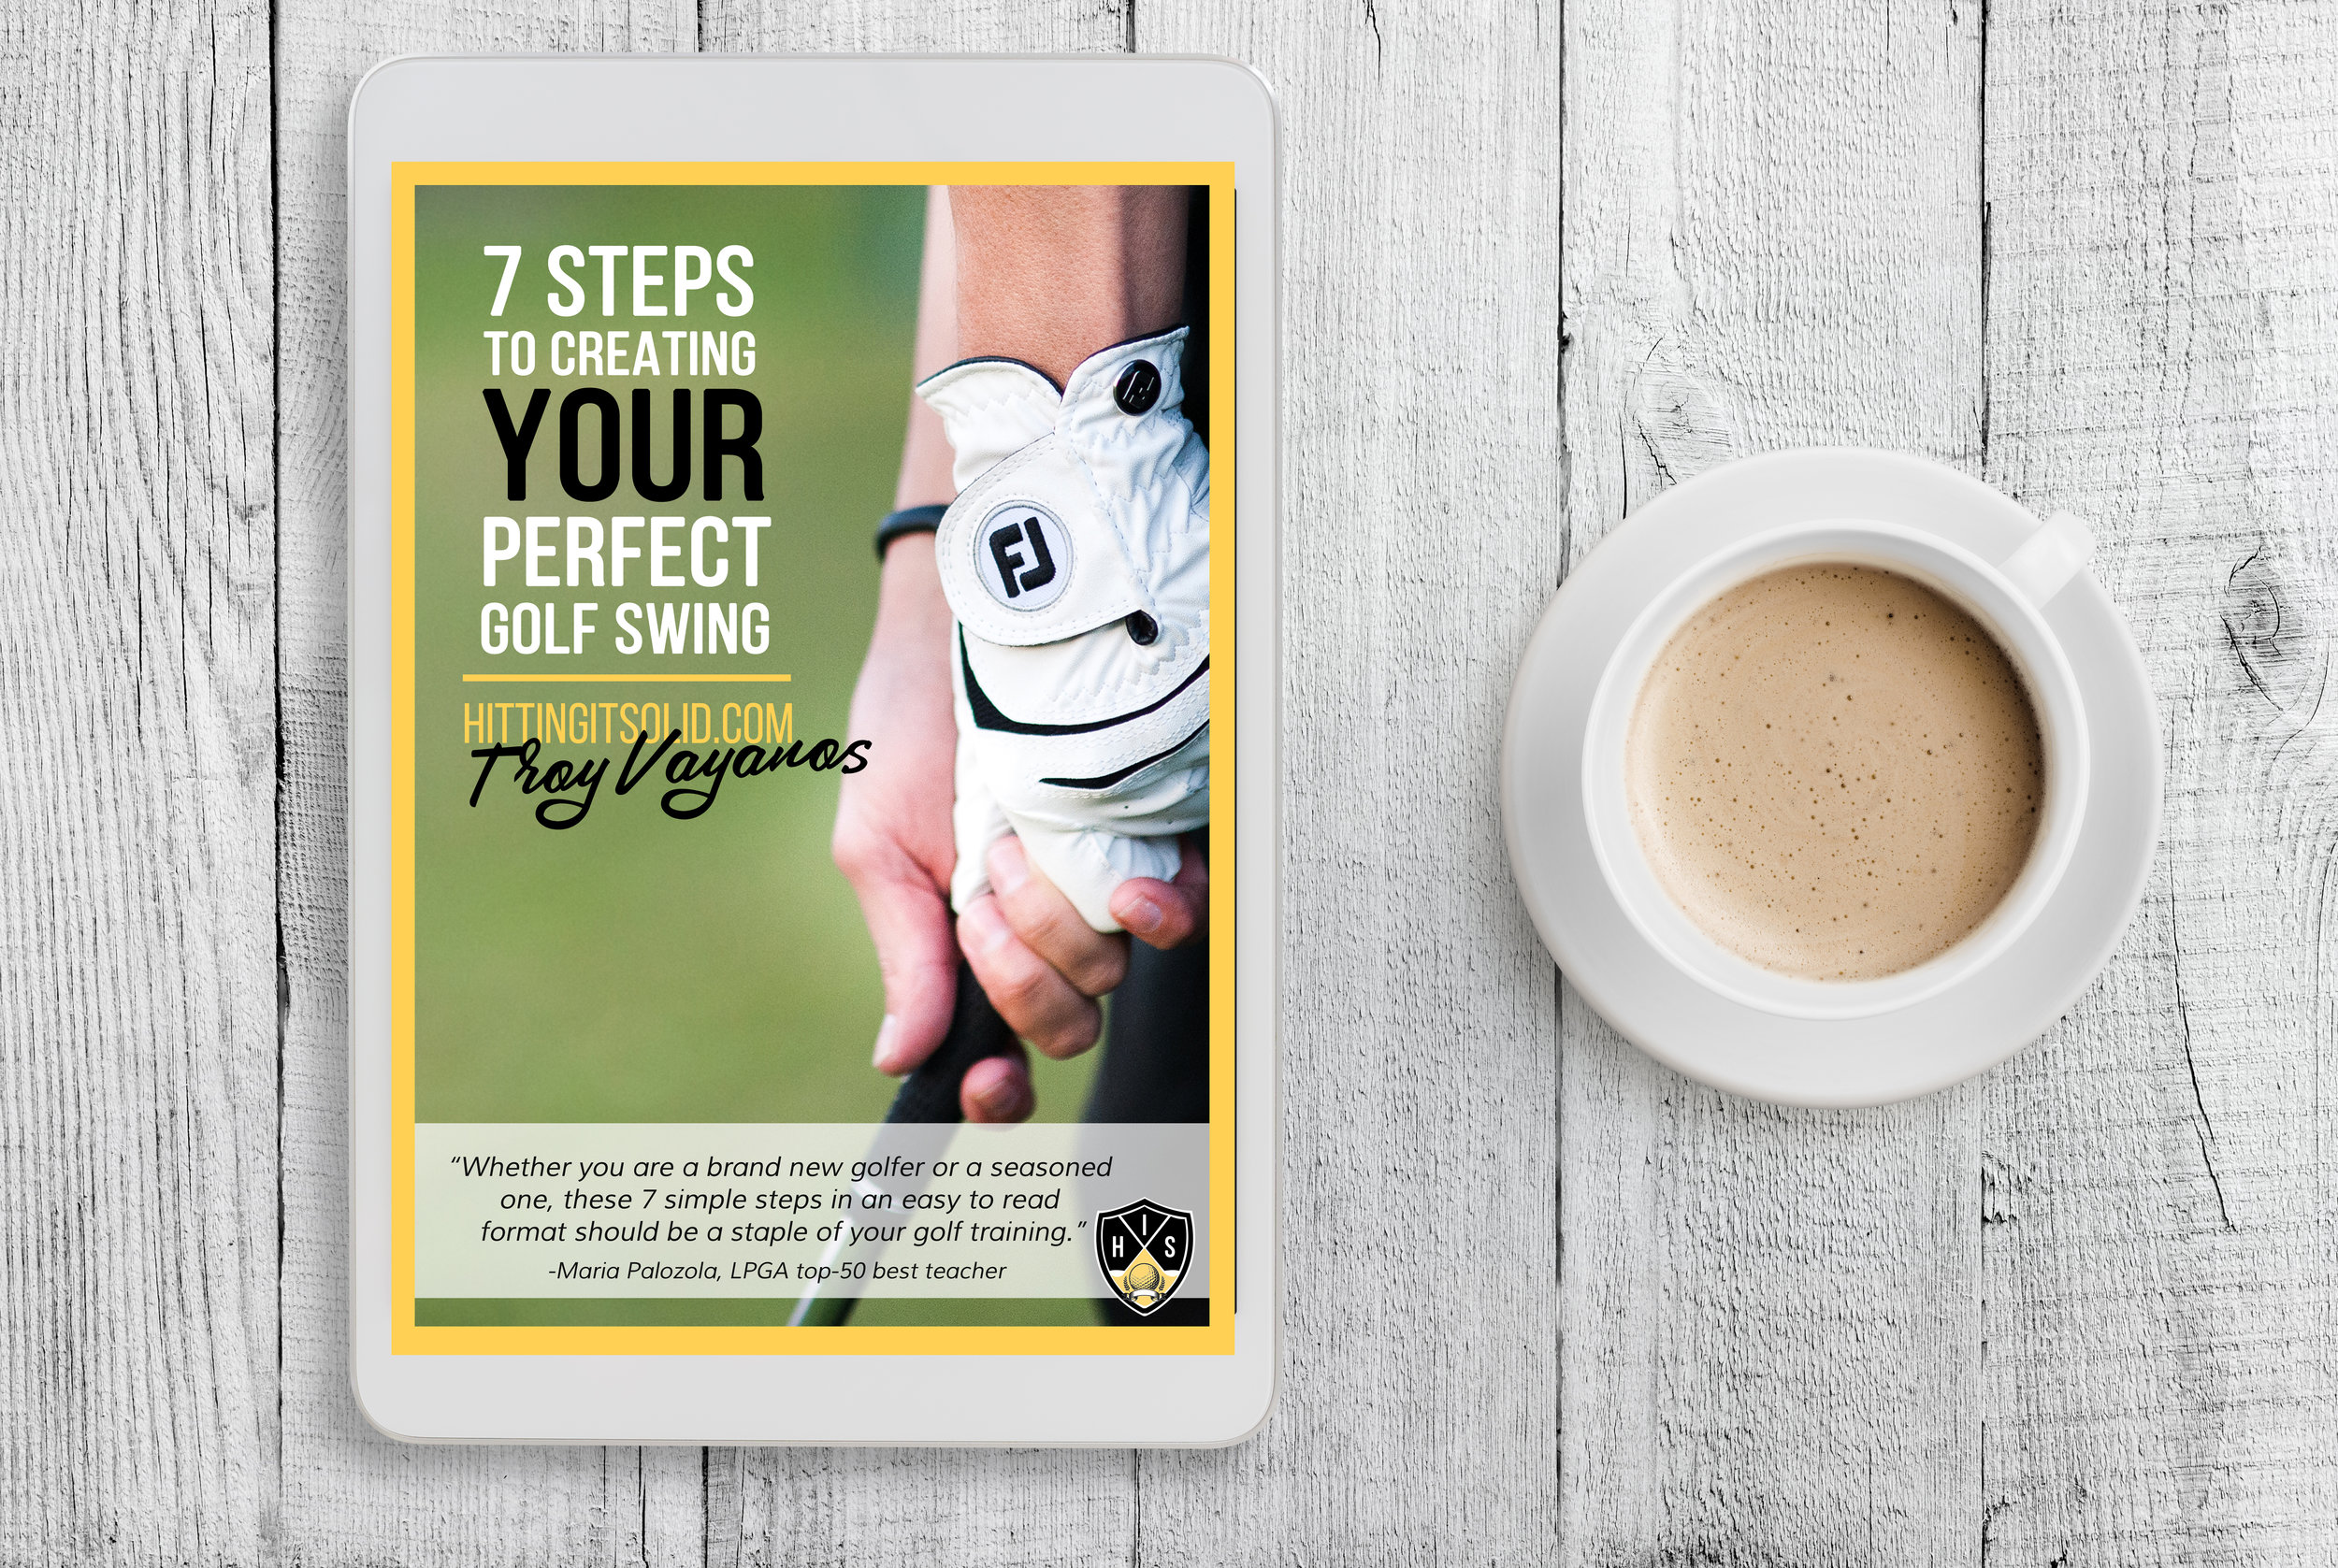 7 STEPS TO YOUR PERFECT GOLF SWING - 38-pages of simple, no-nonsense golf instruction that can totally transform the way you think about the golf swing!